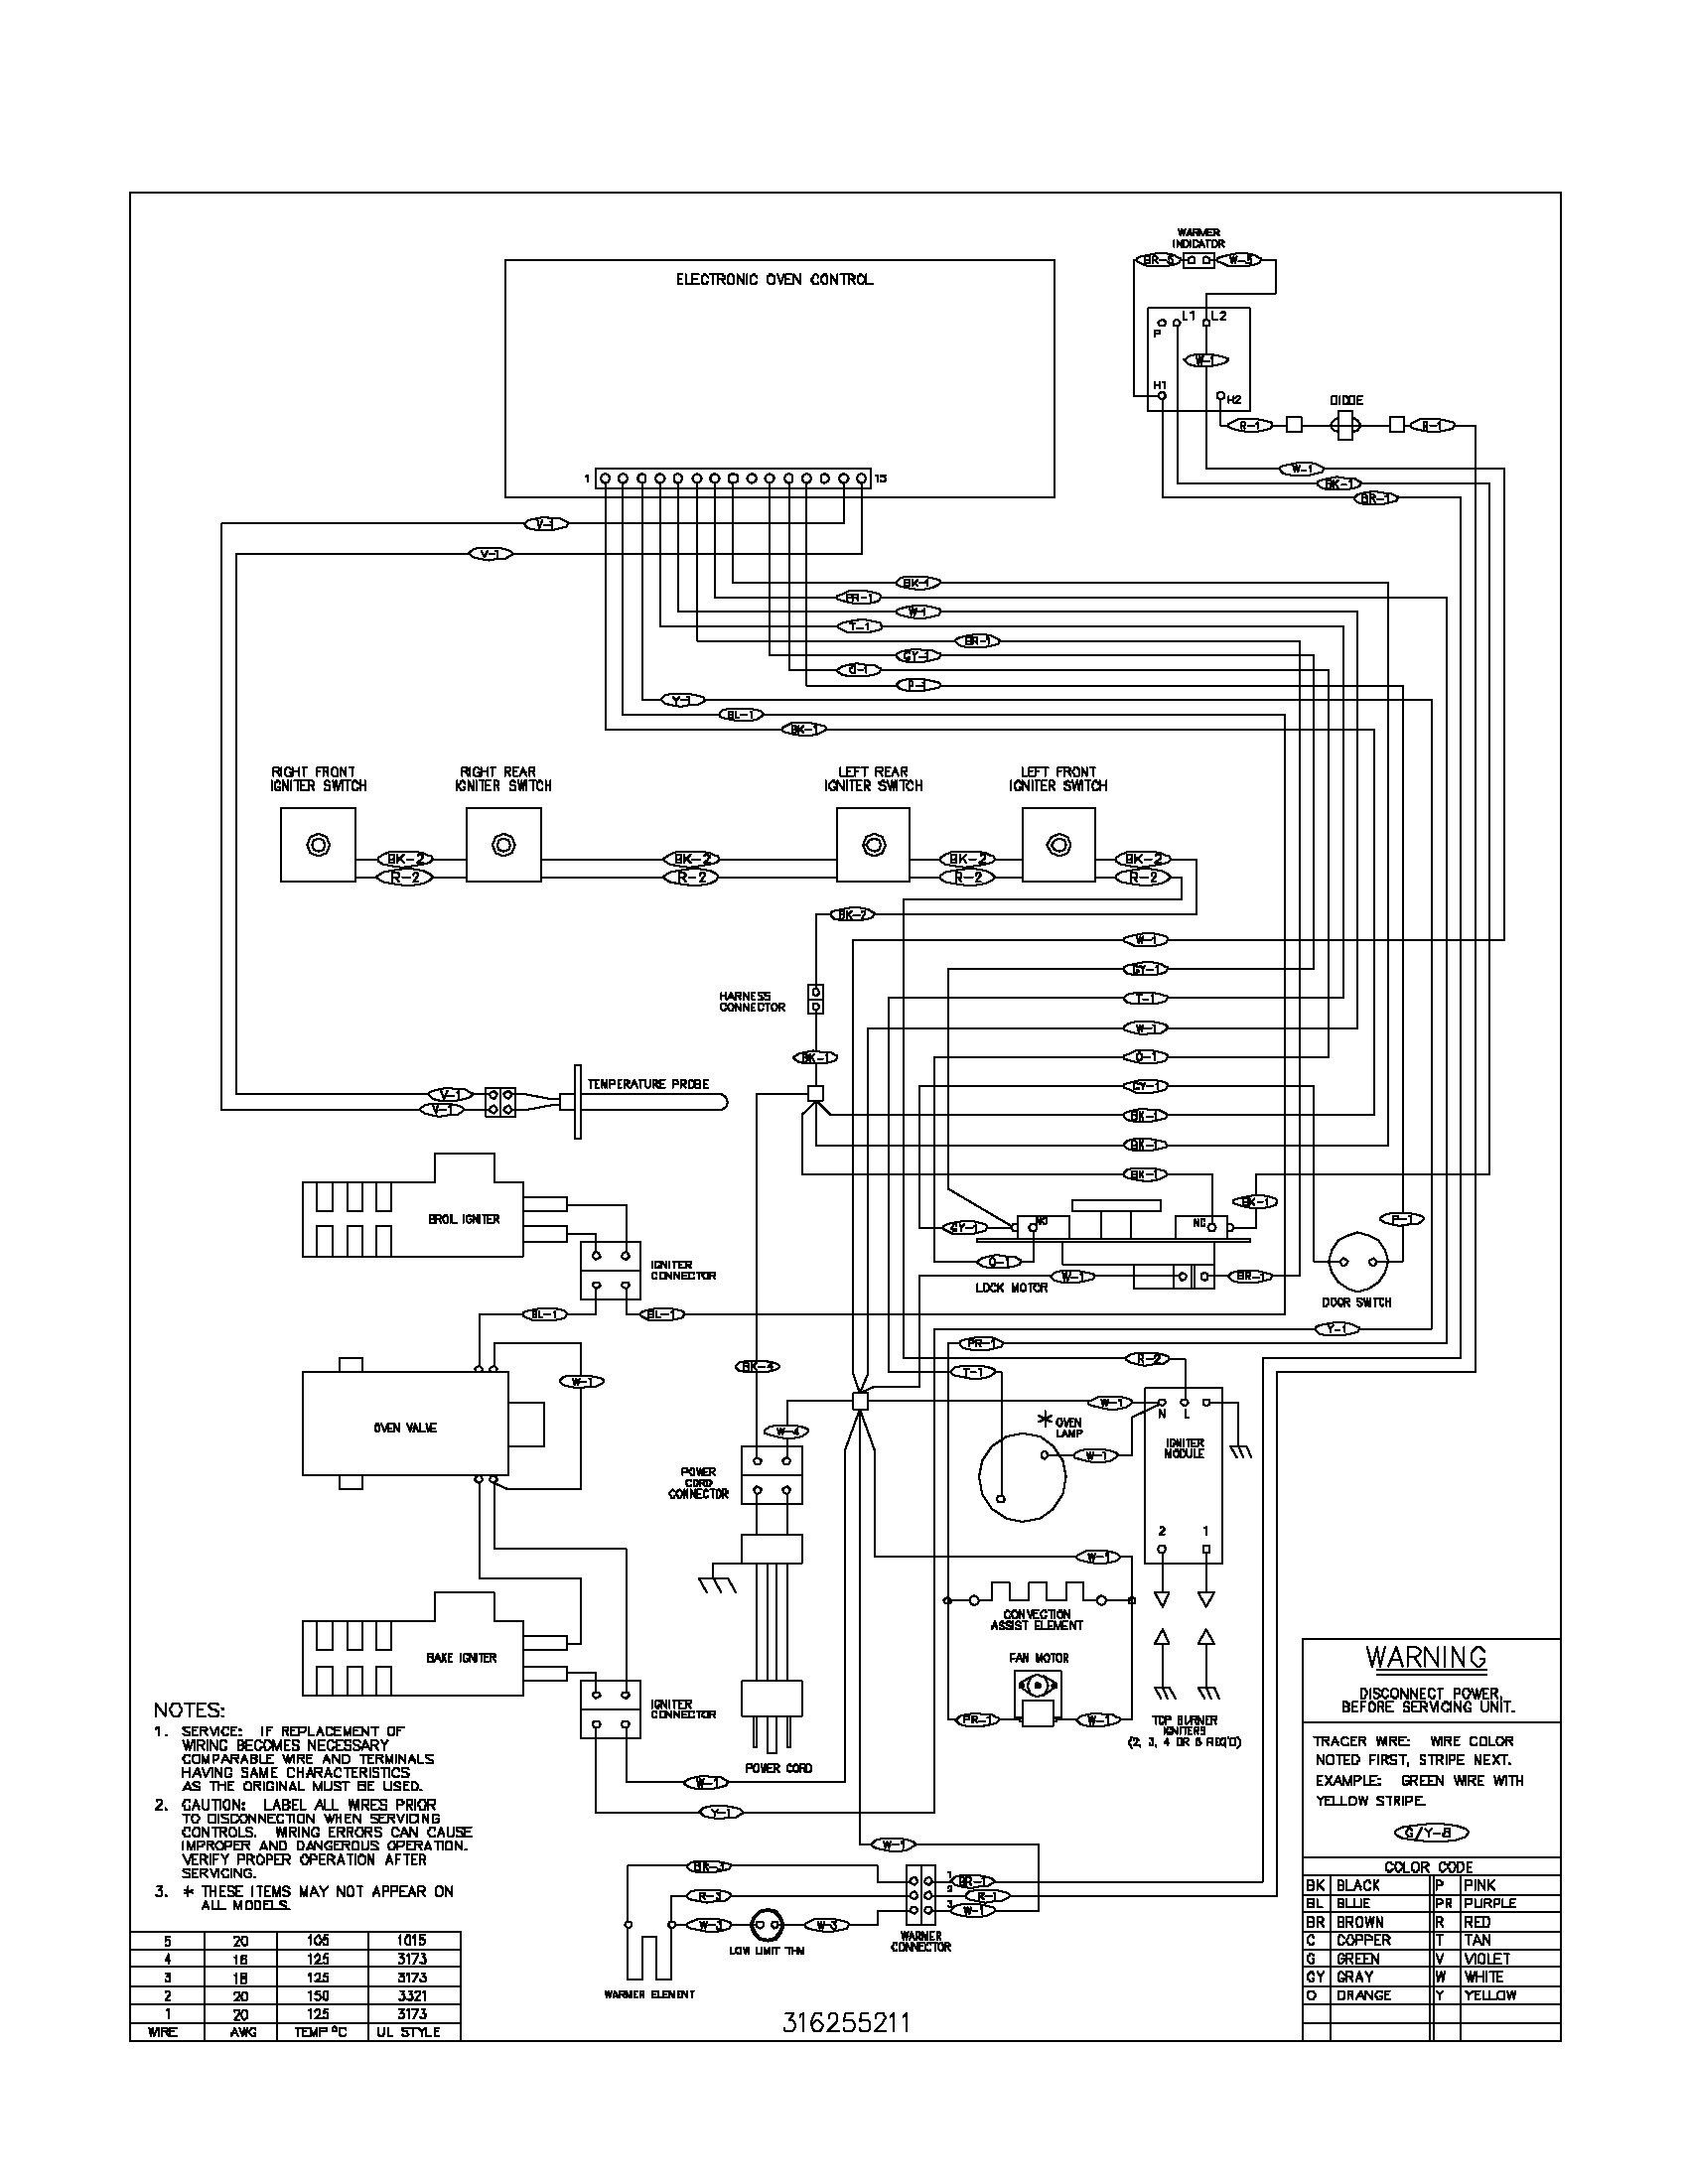 New Wiring Diagram Ice Maker Diagrams Digramssample Diagramimages Wiringdiagramsample Wir Baseboard Heater Electrical Wiring Diagram Honeywell Thermostats